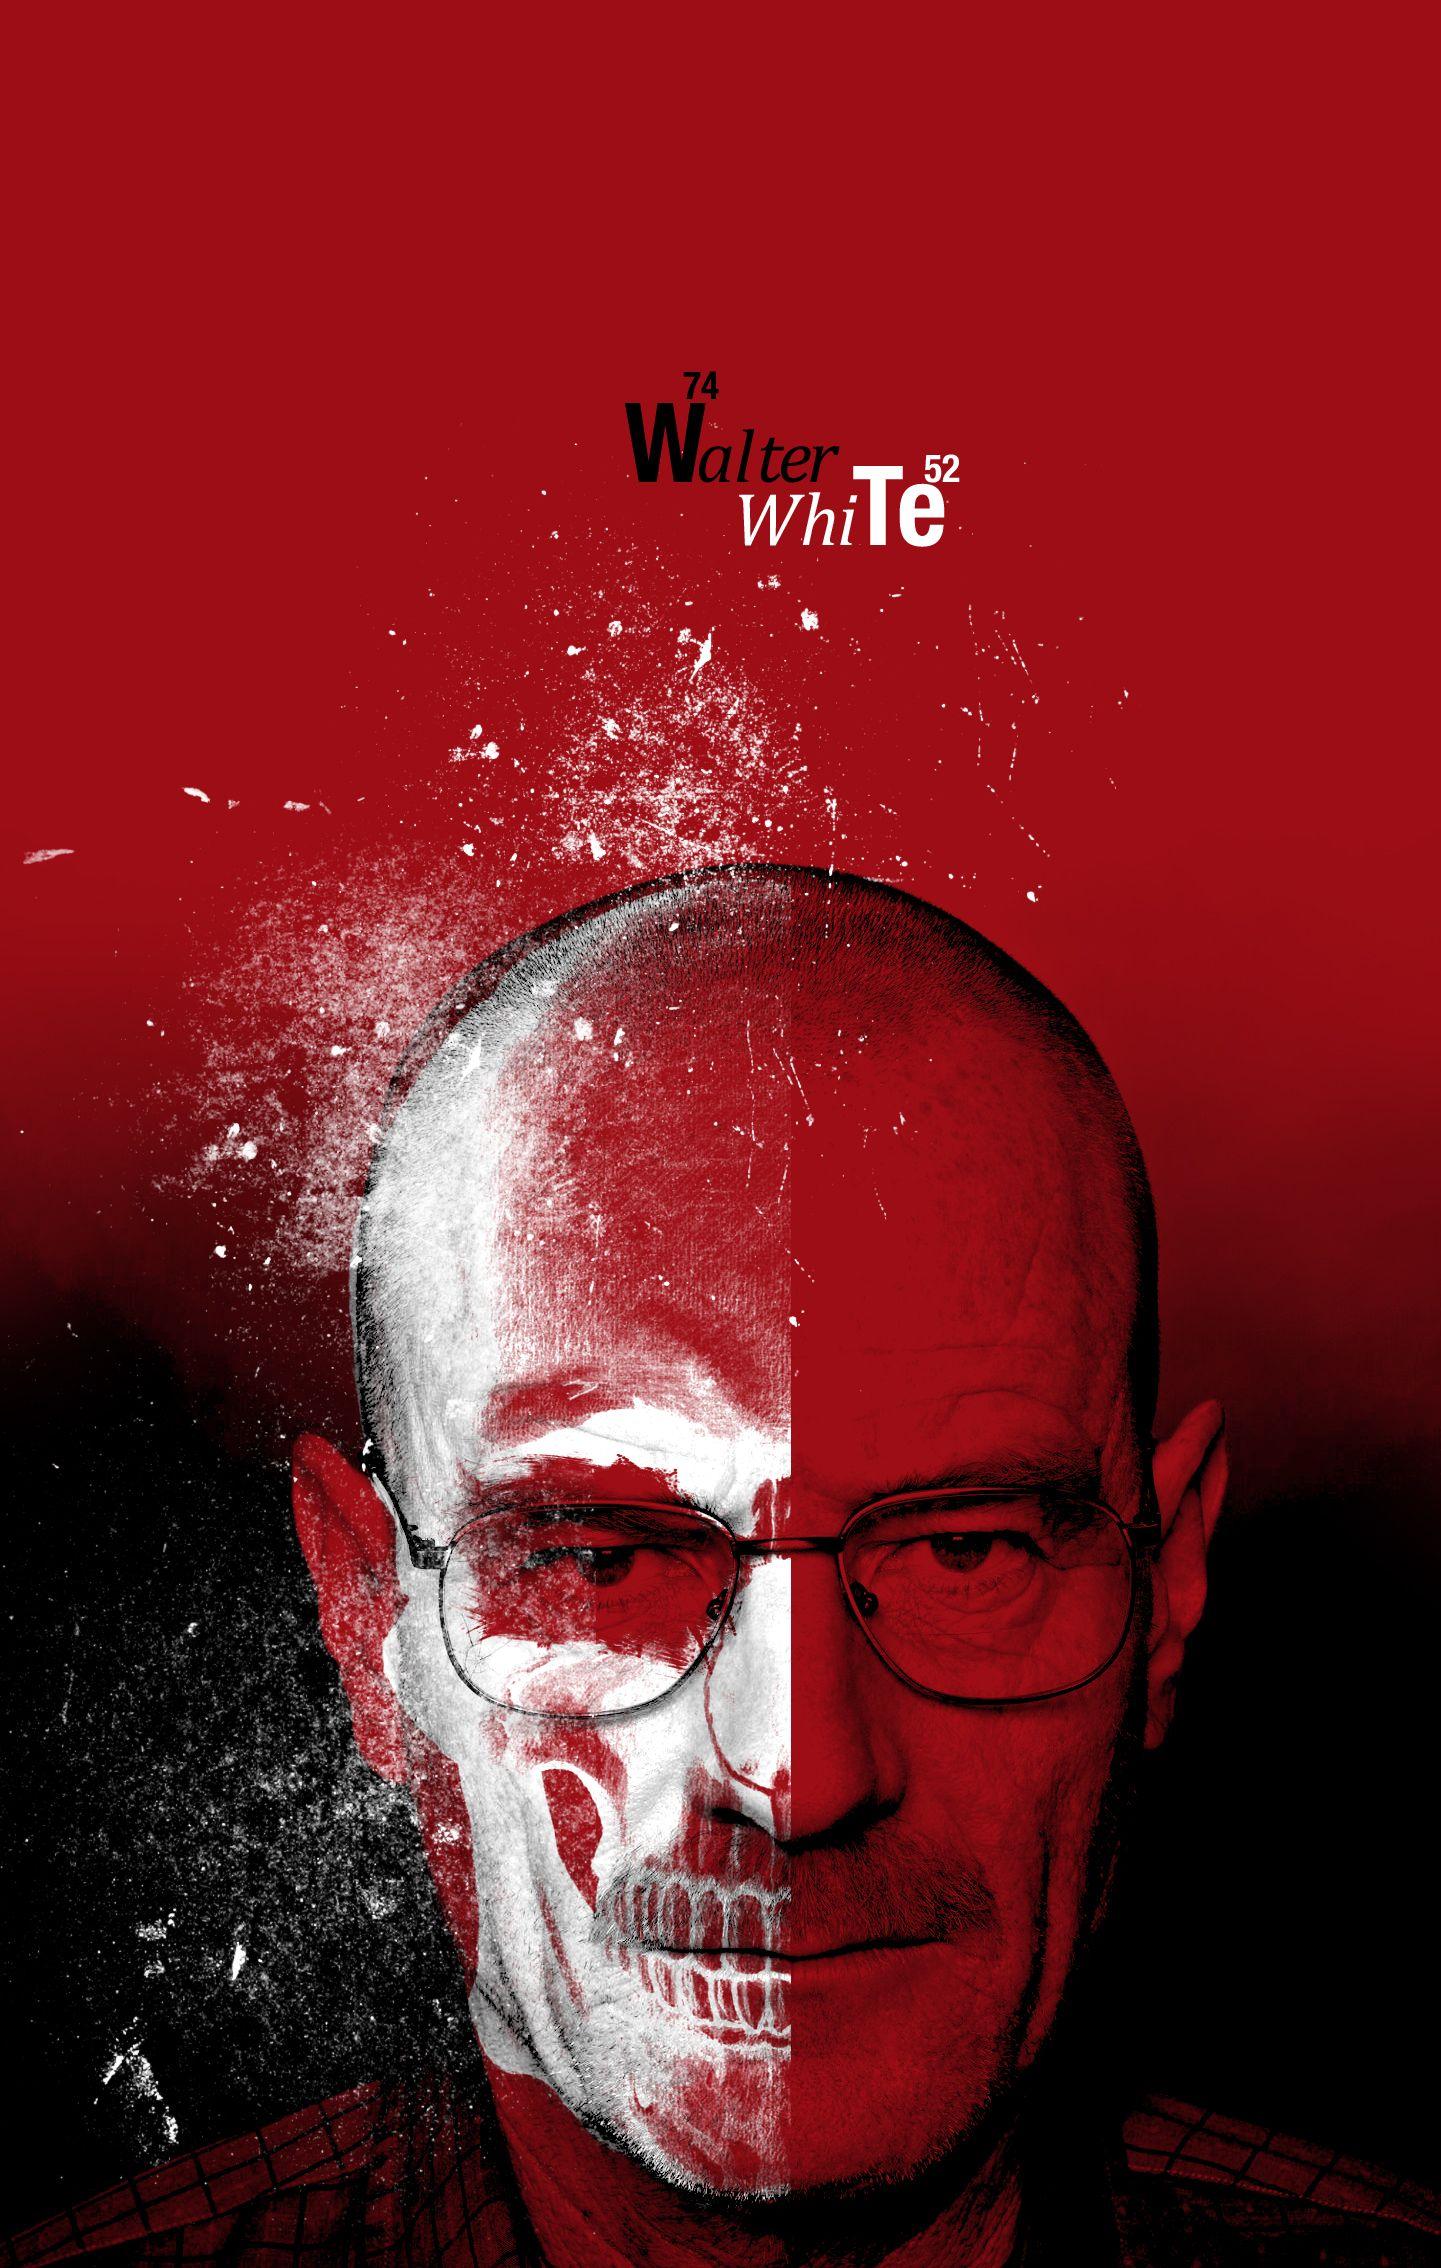 Walter White from Breaking Bad Breaking bad poster